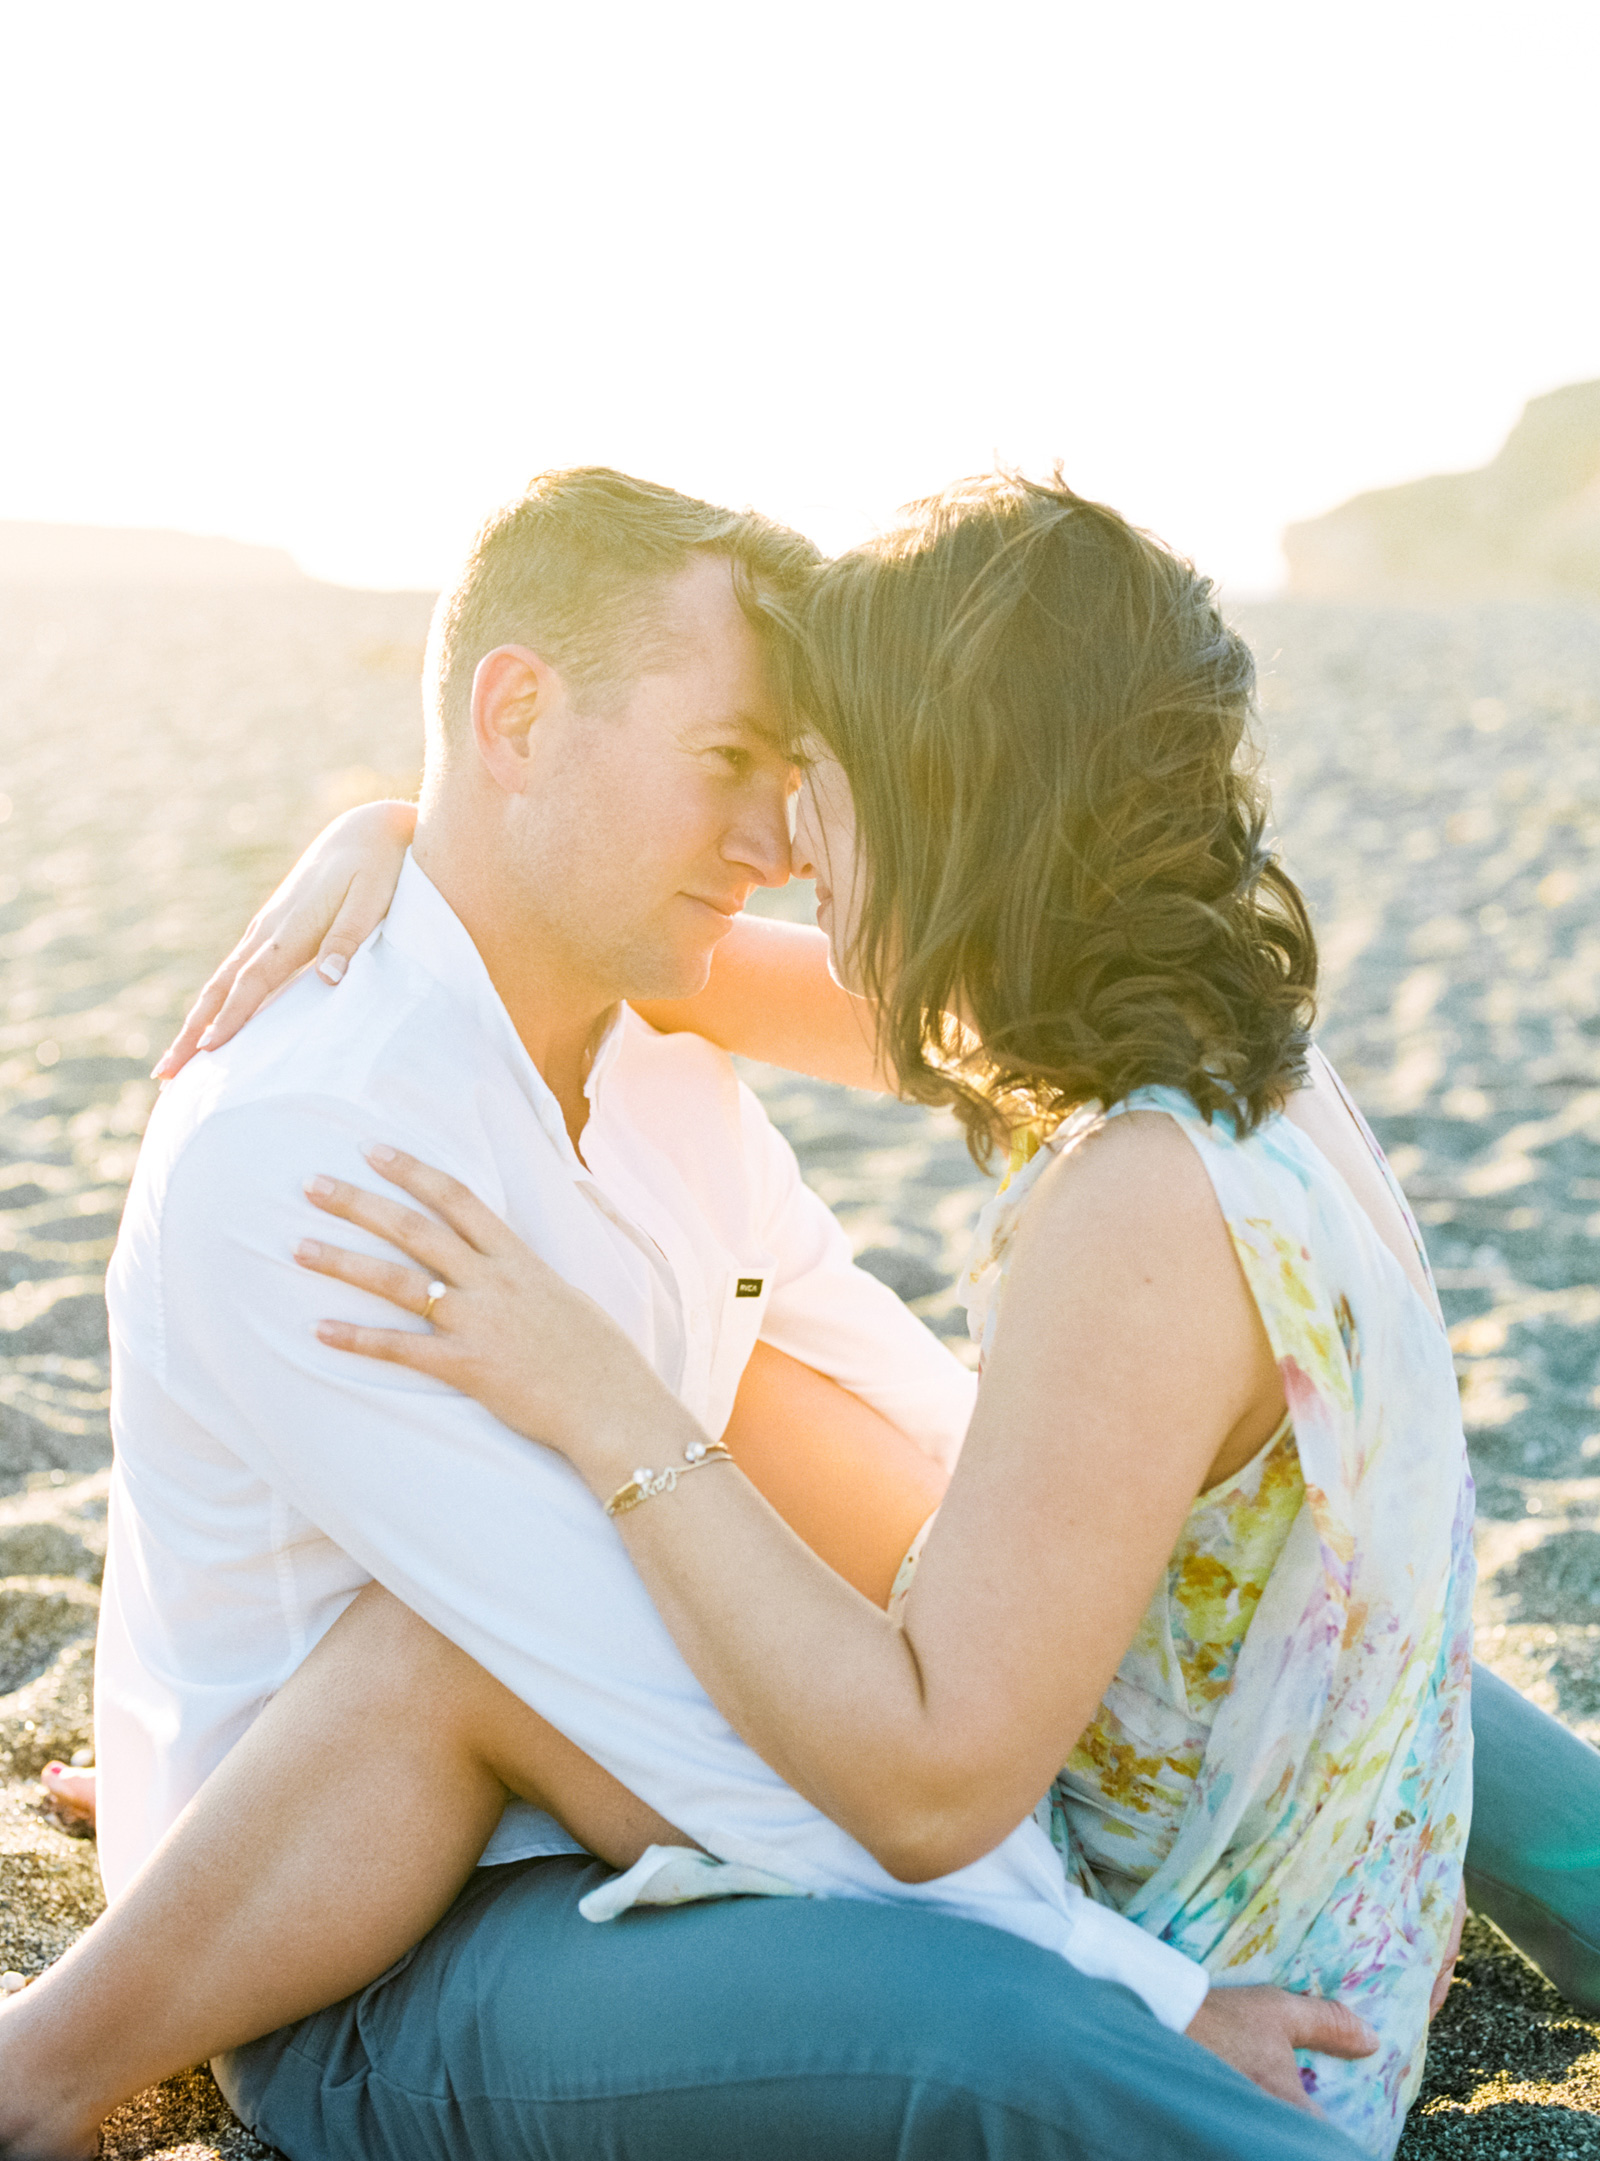 Natalie-Schutt-Photography-Malibu-Engagements-Malibu-Wedding-Beachside-Wedding-Fine-Art-Wedding-Photography-Southern-California-Brides_11.jpg